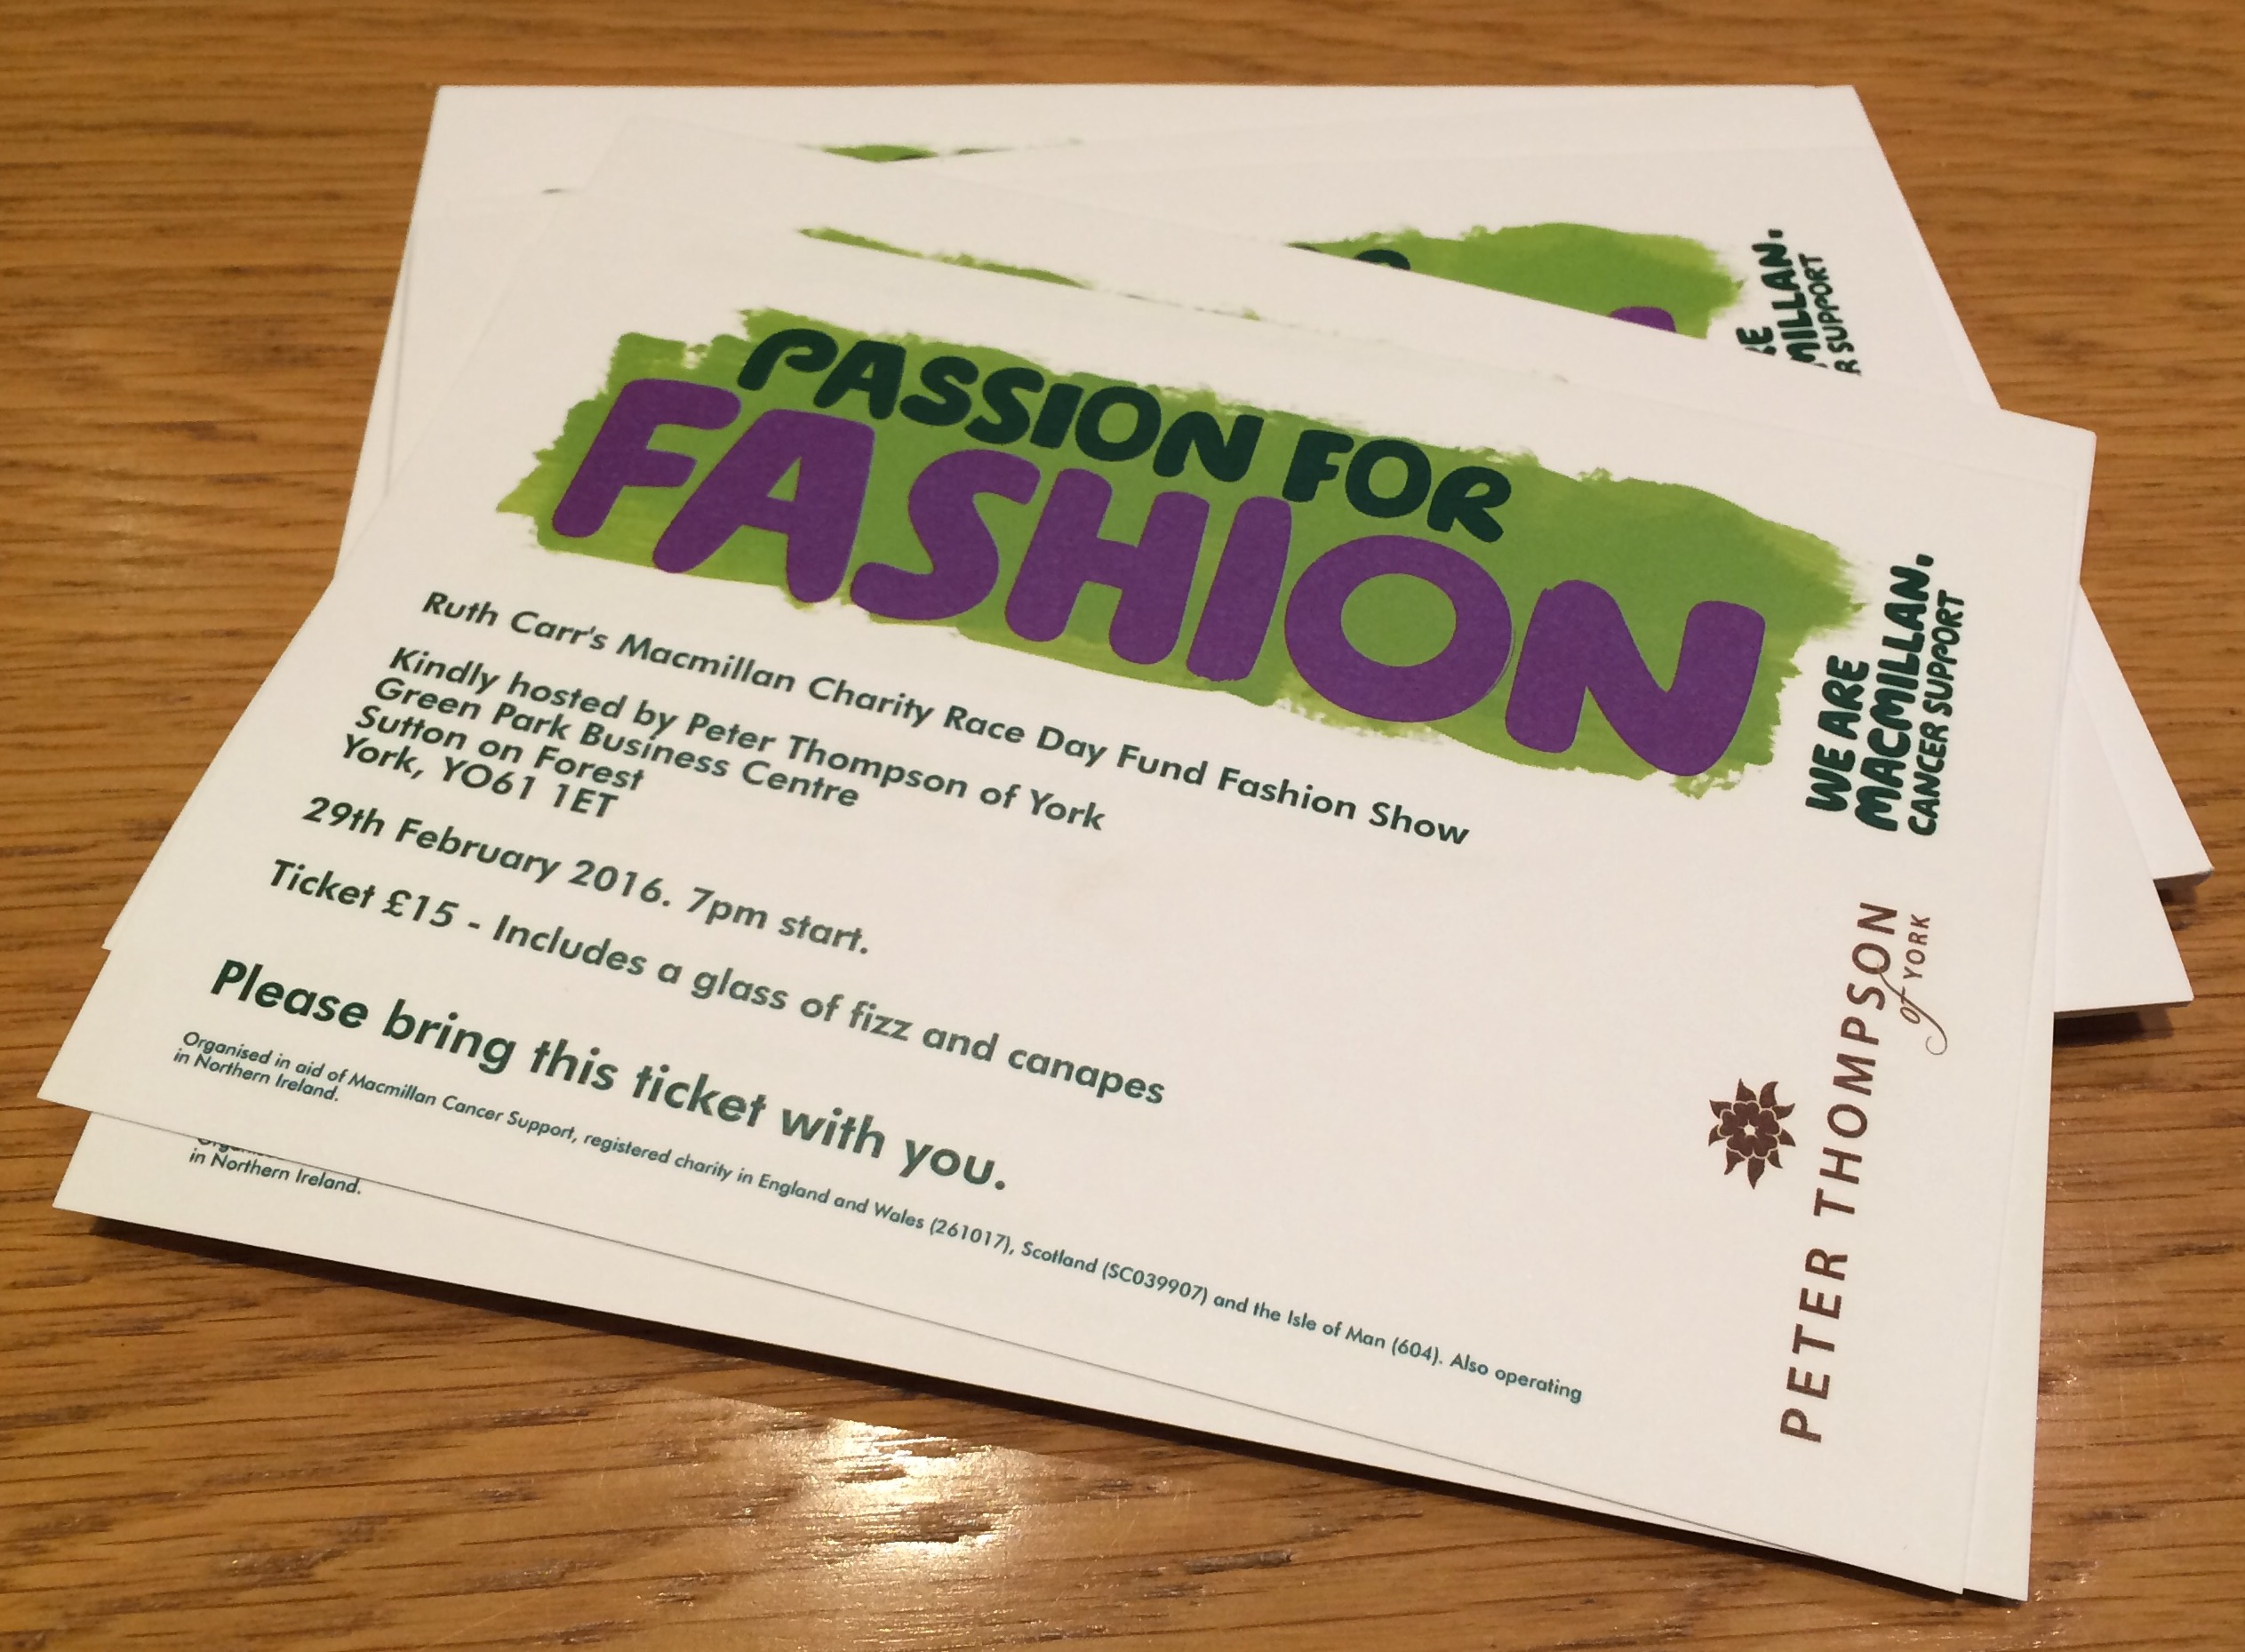 Fashion show tickets now available - 6th February 2016